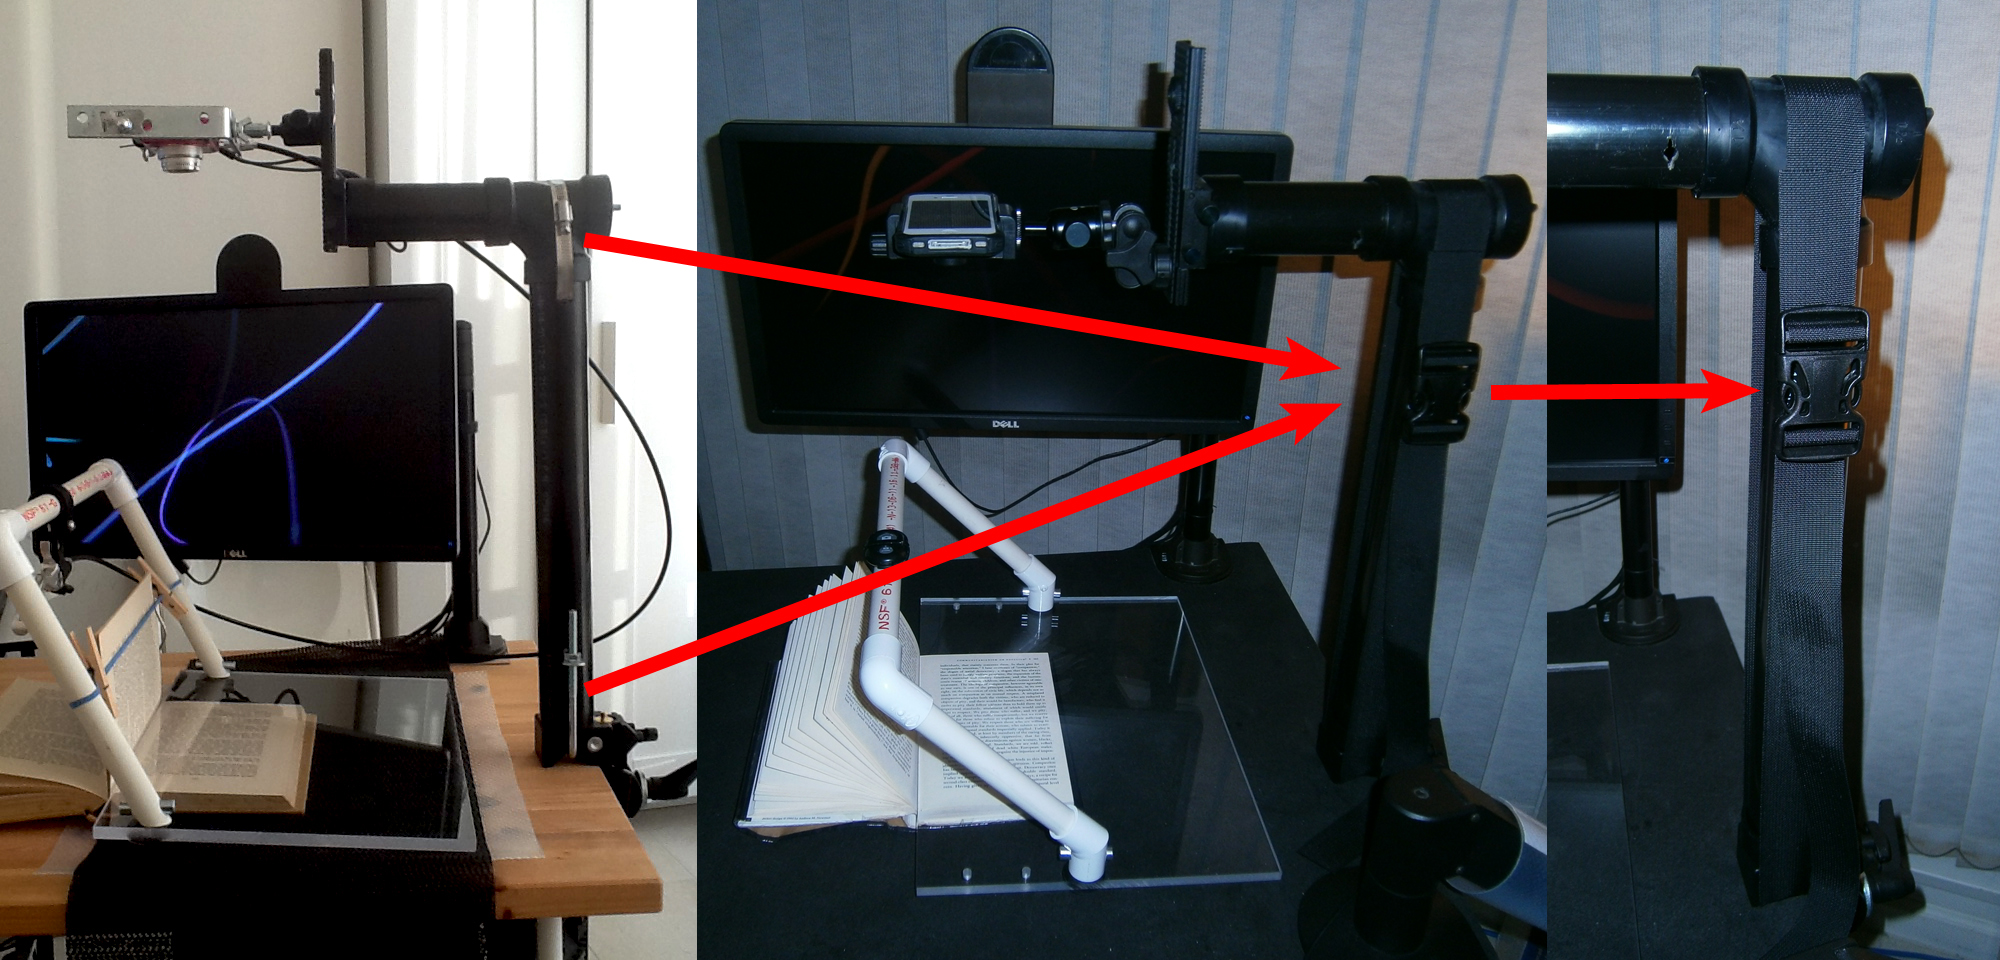 Scanner 900 - Support assembly - before & after.jpg